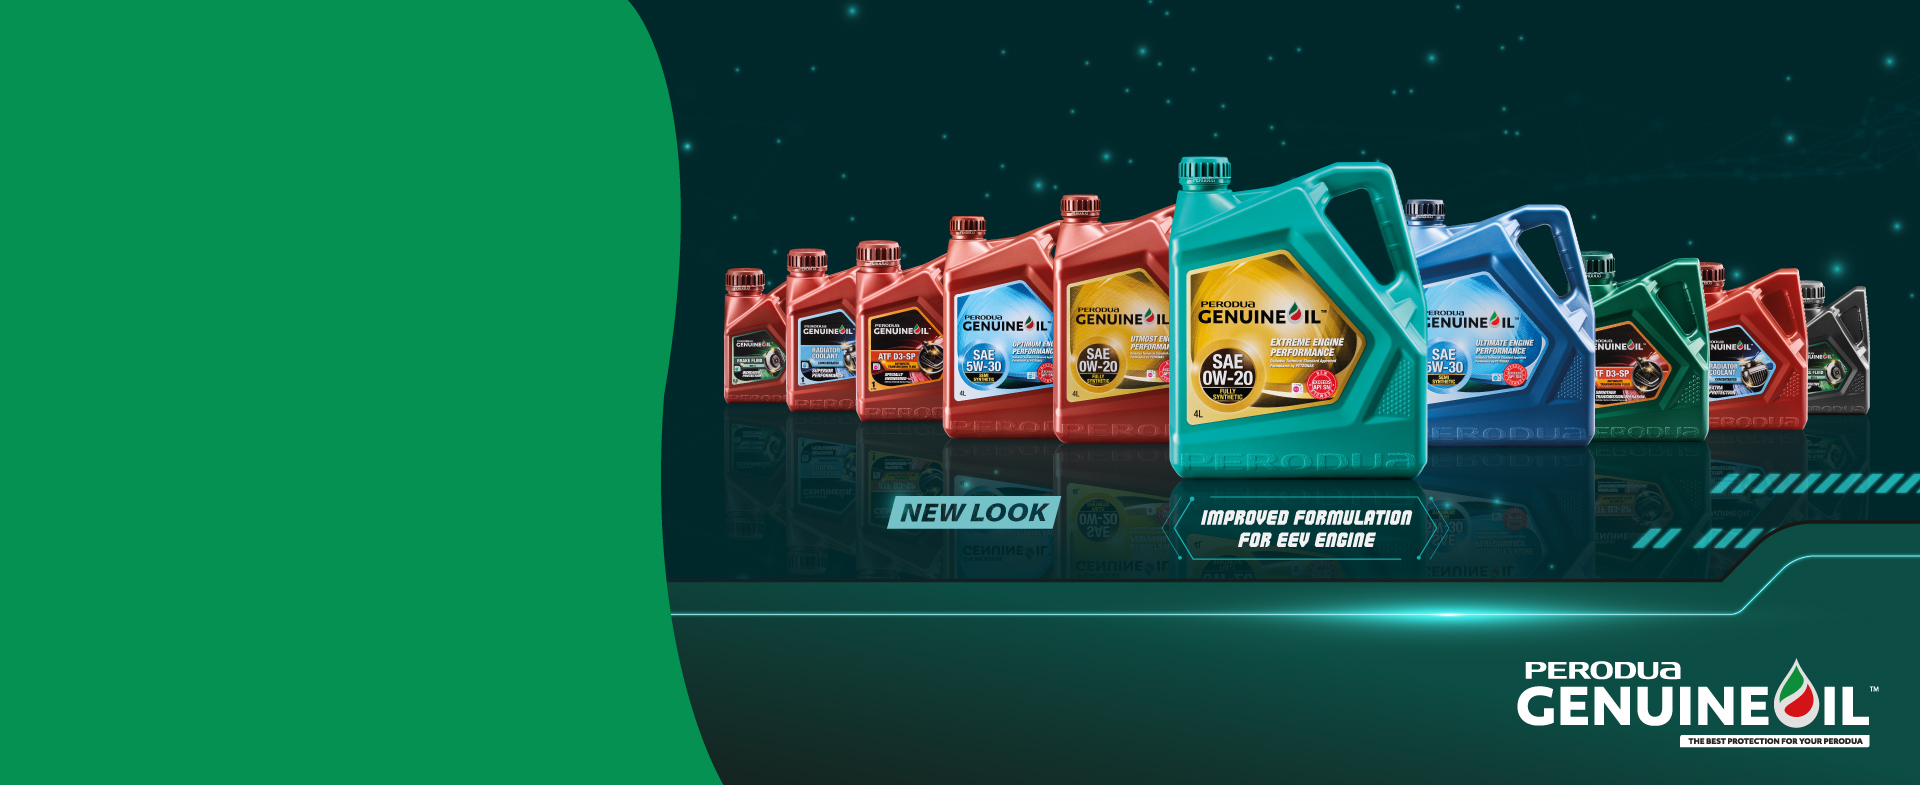 Perodua Genuine Oil & Lubricants